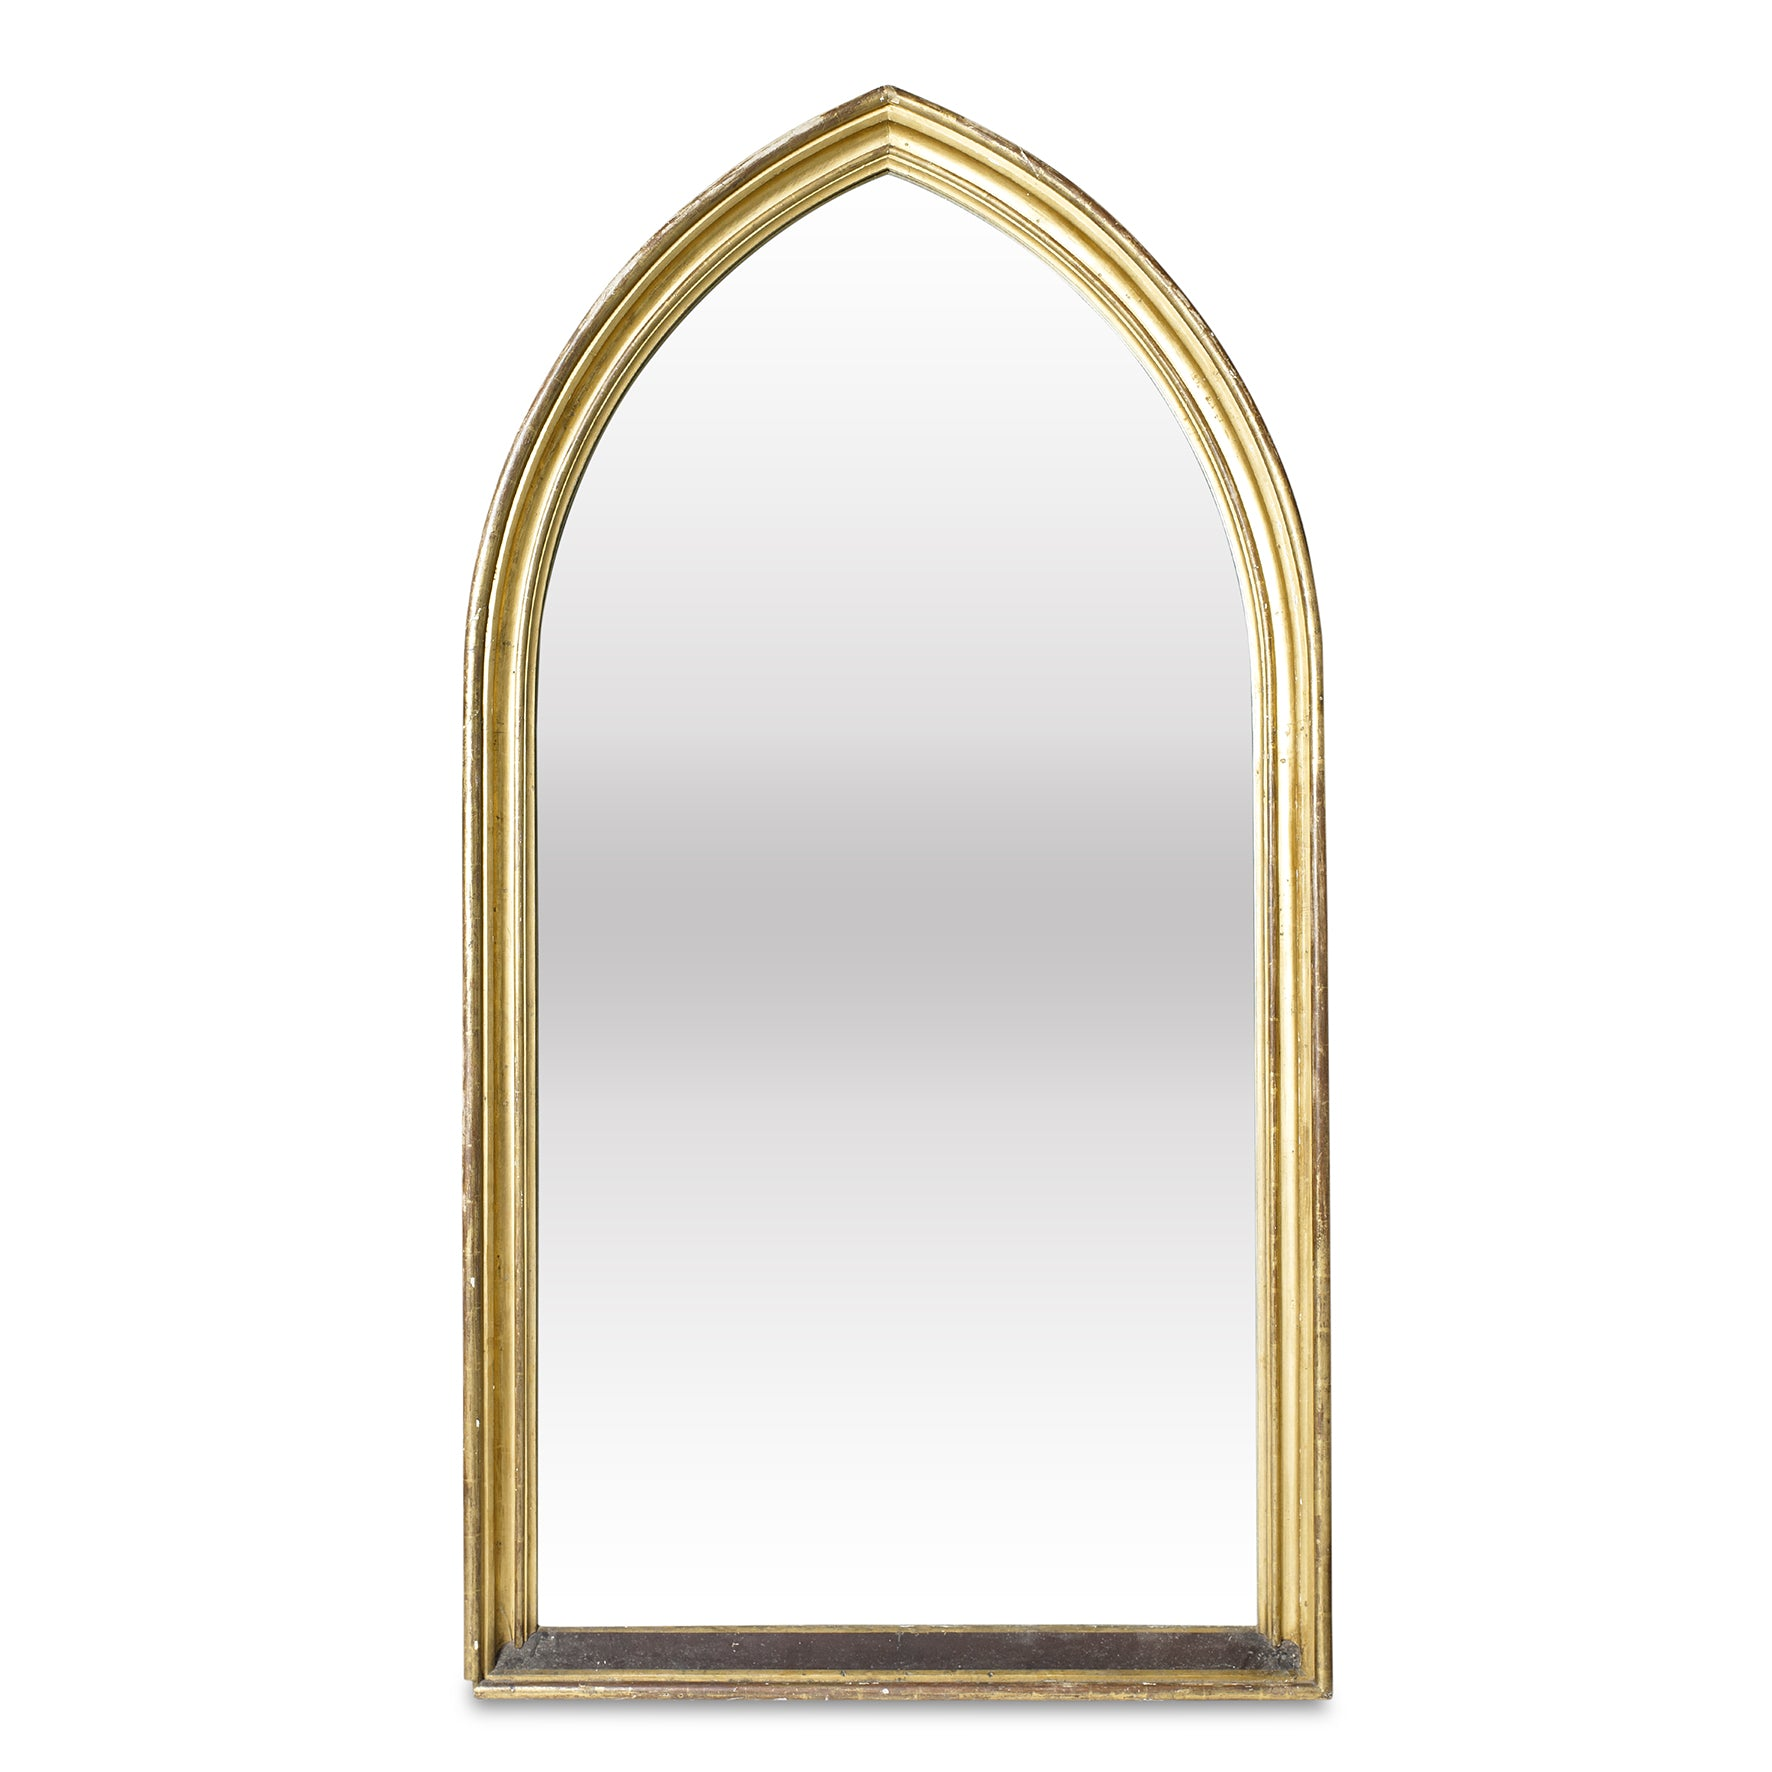 An impressive gilt-wood arched wall mirror, English 19th Century